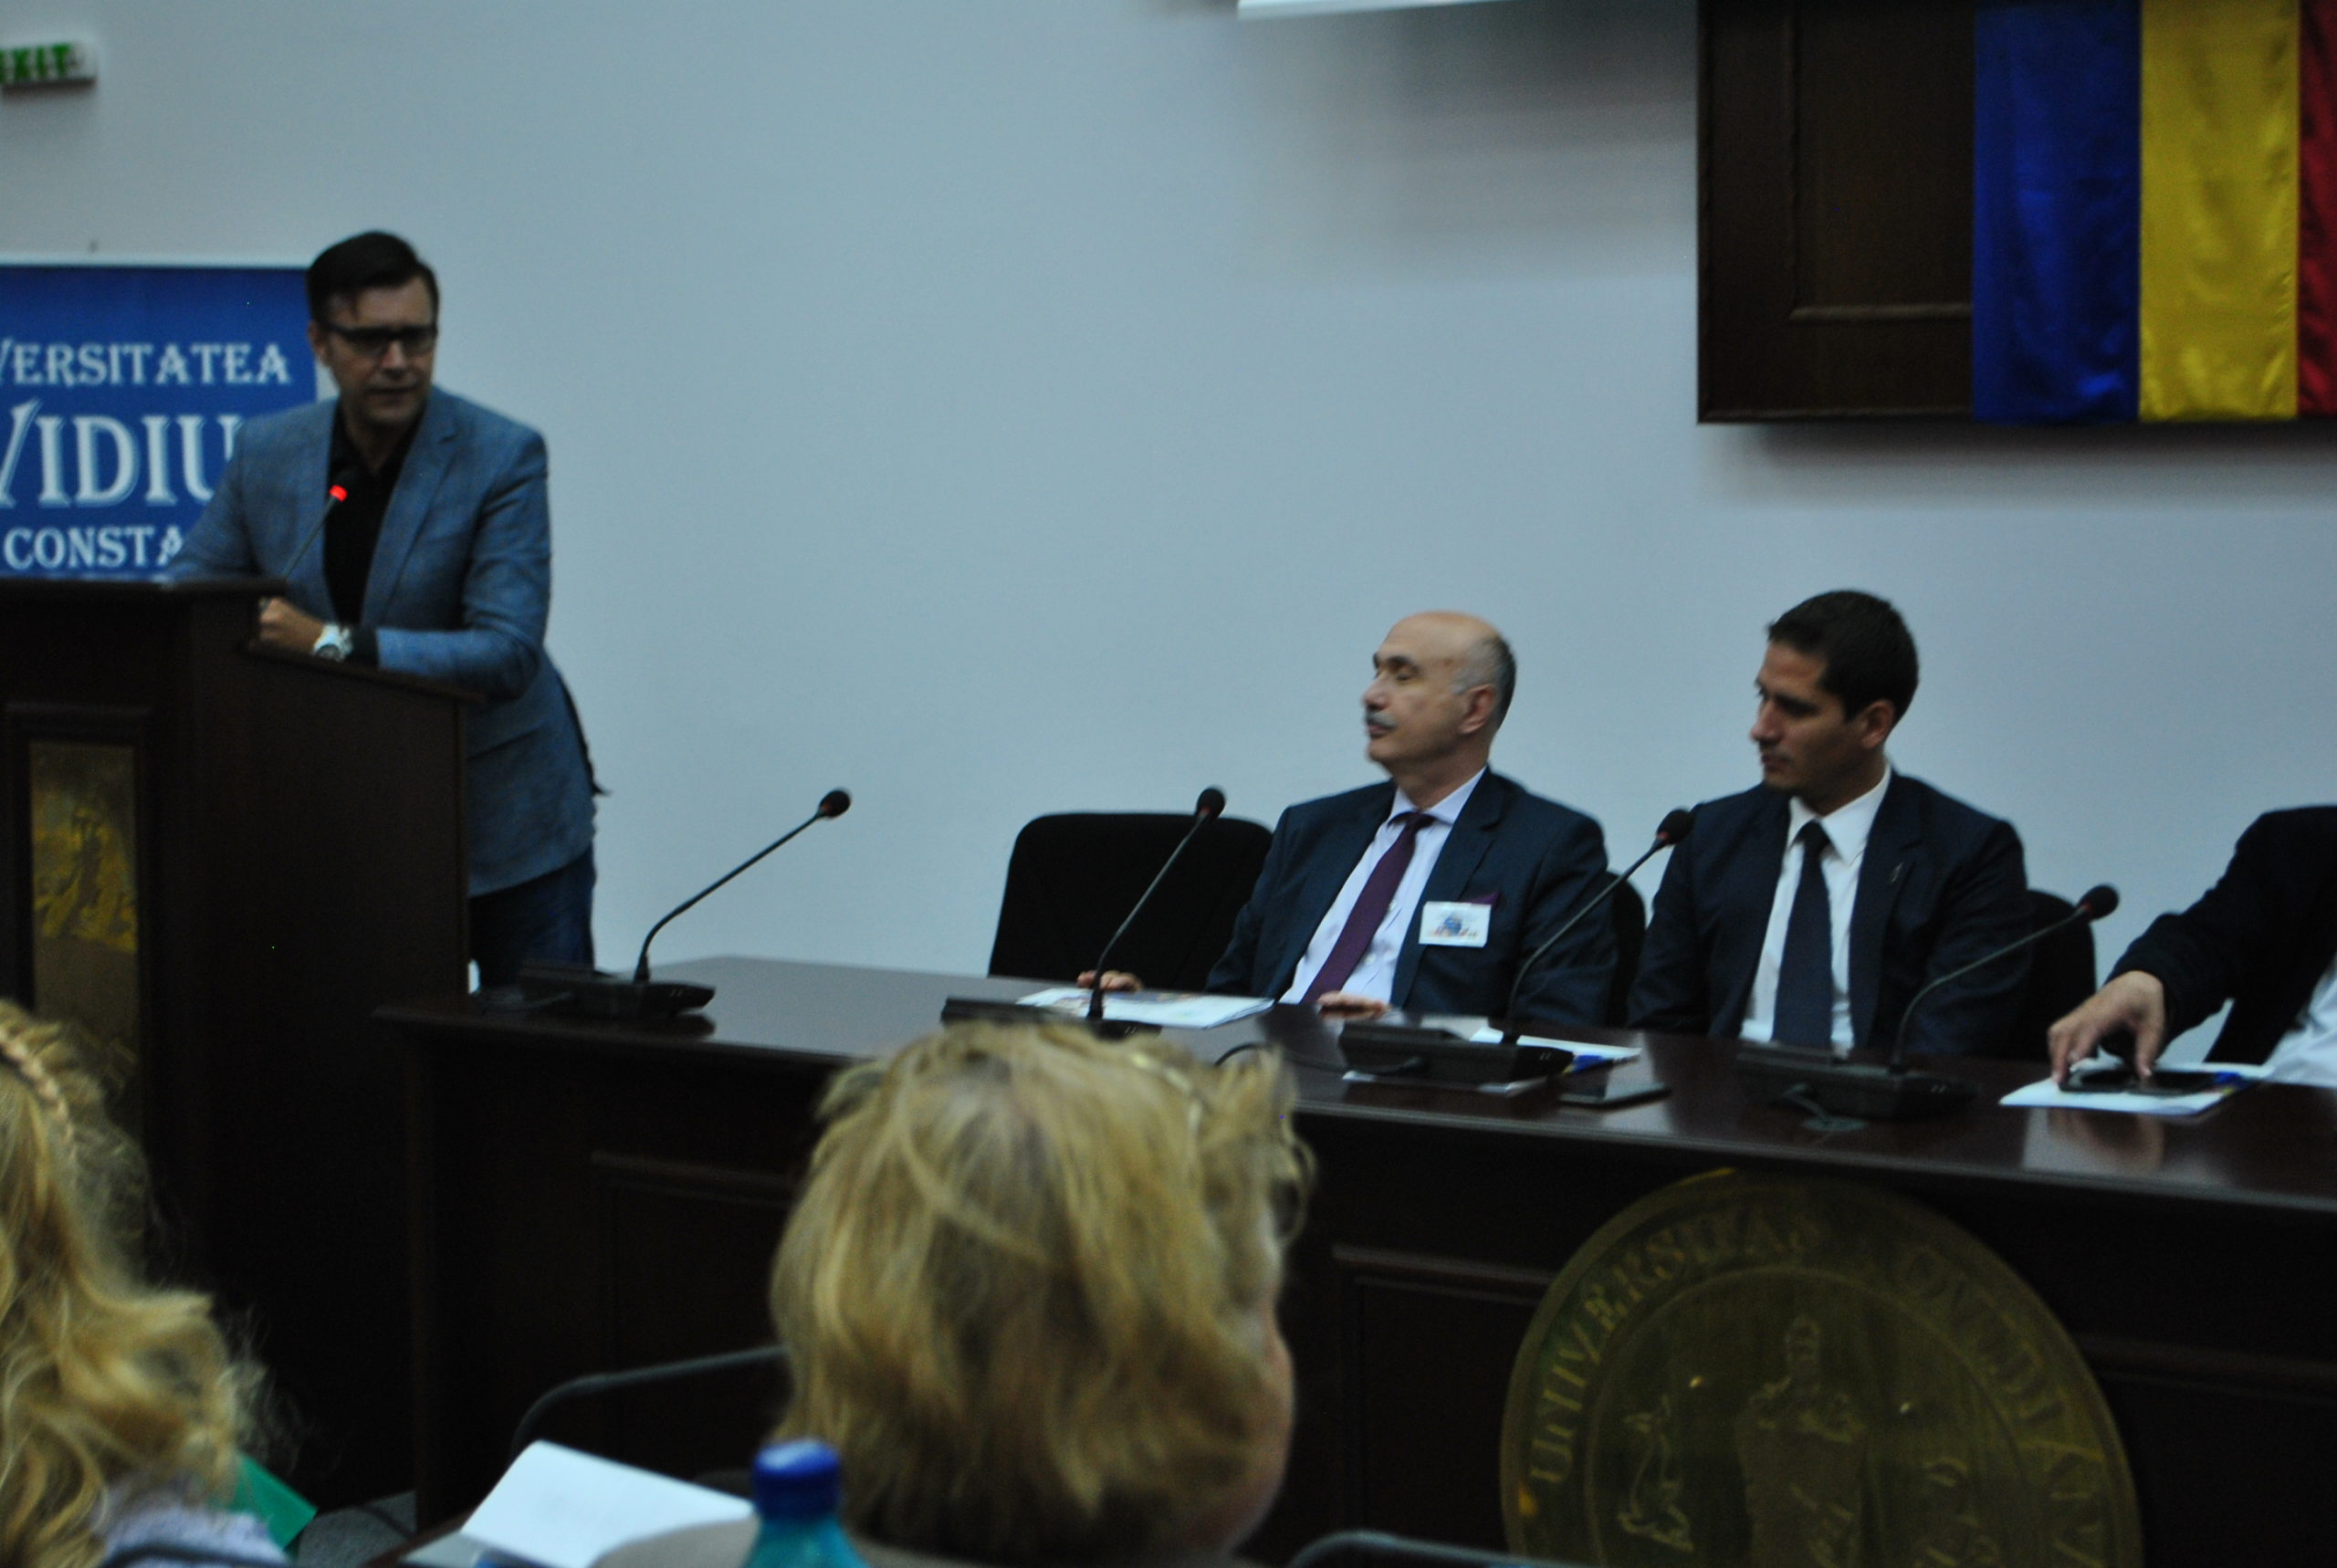 SEA 12 – CROSS-CULTURAL KNOWLEDGE EXCHANGE. Interactions between Law, Education, Tourism & Culture.